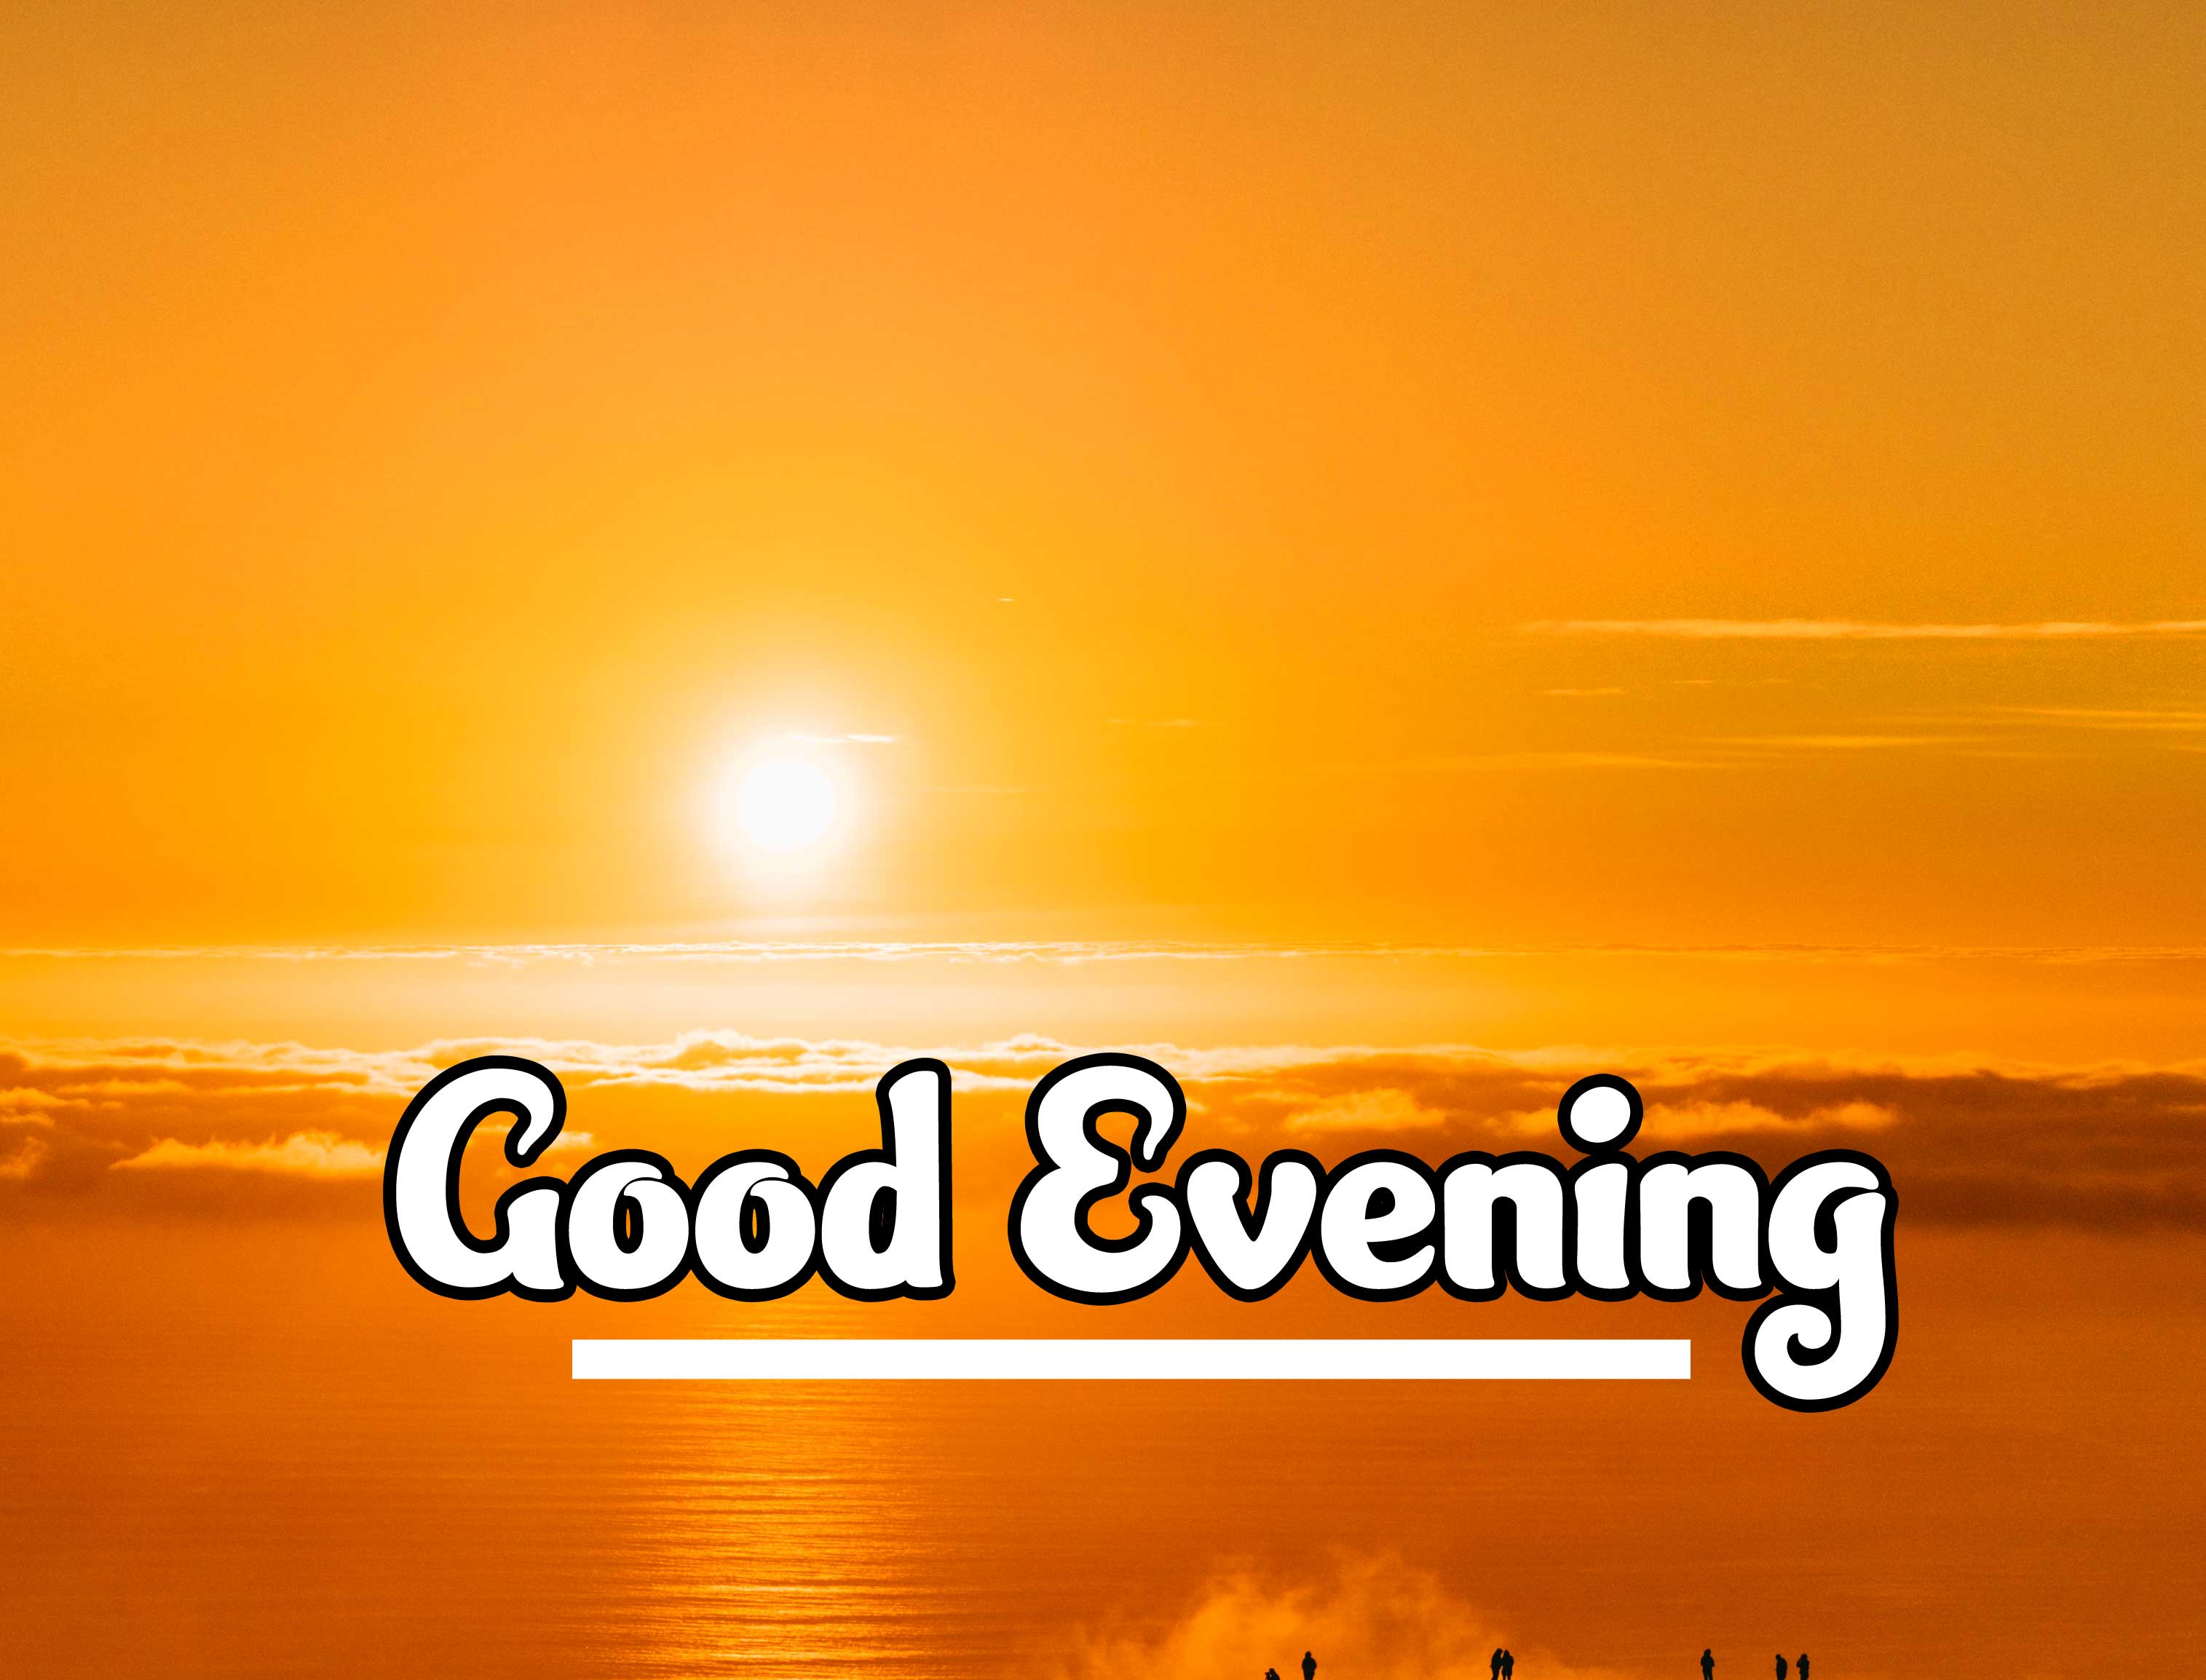 Good Evening Wishes Images Pic Wallpaper free Download